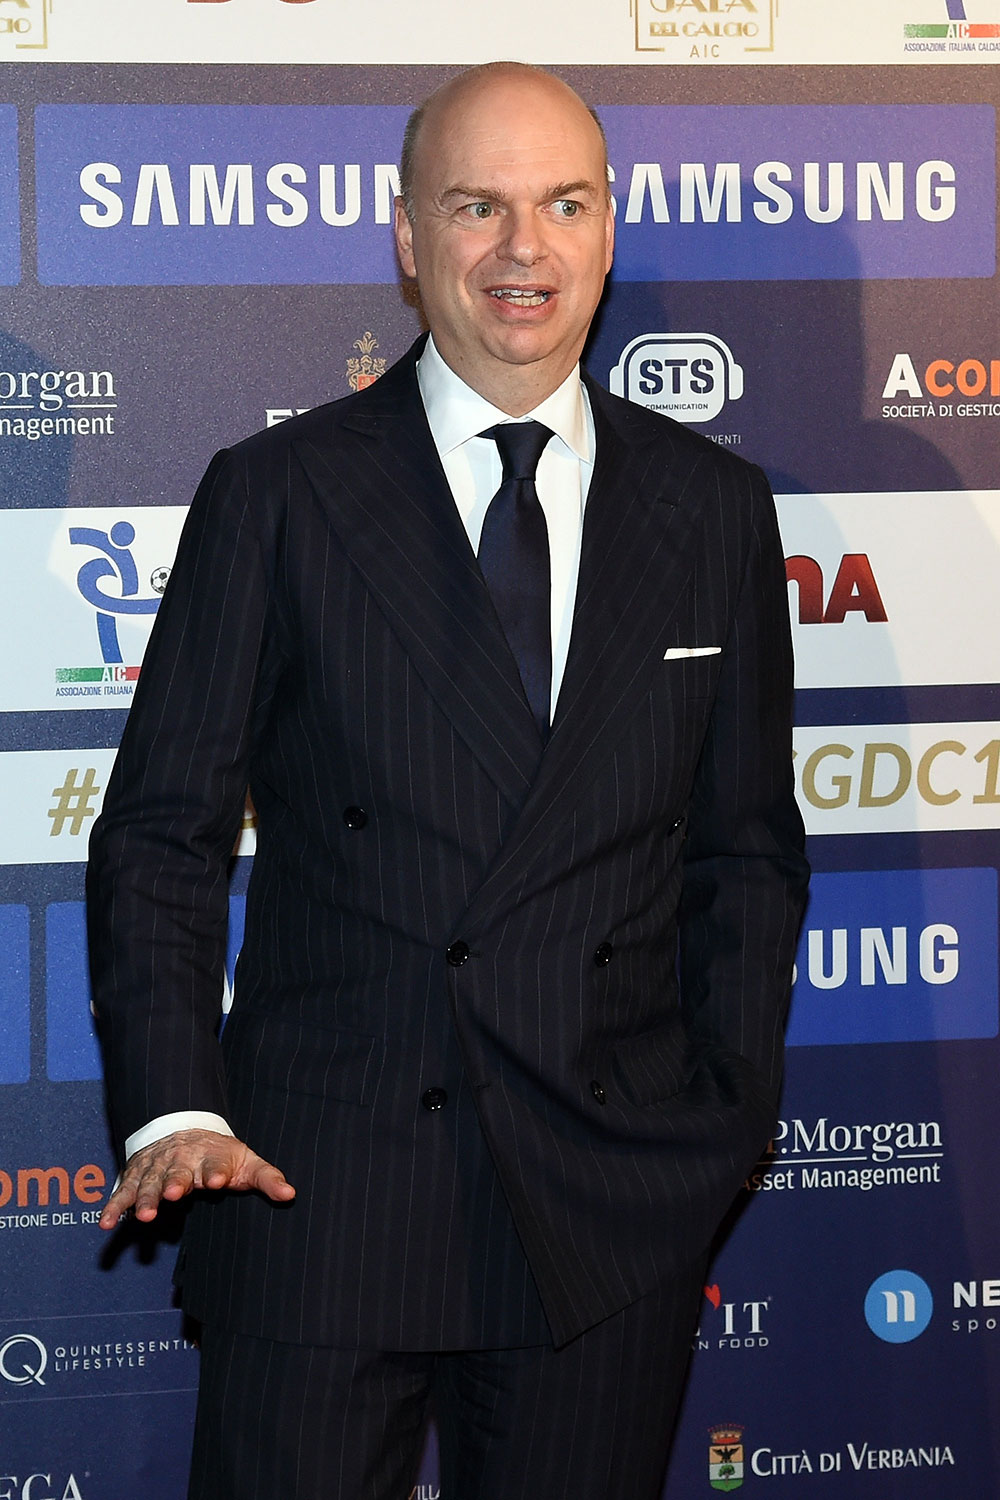 Marco Fassone during a Gran Galà del Calcio event on November 27, 2017 in Milan, Italy. (Photo by Pier Marco Tacca/Getty Images)